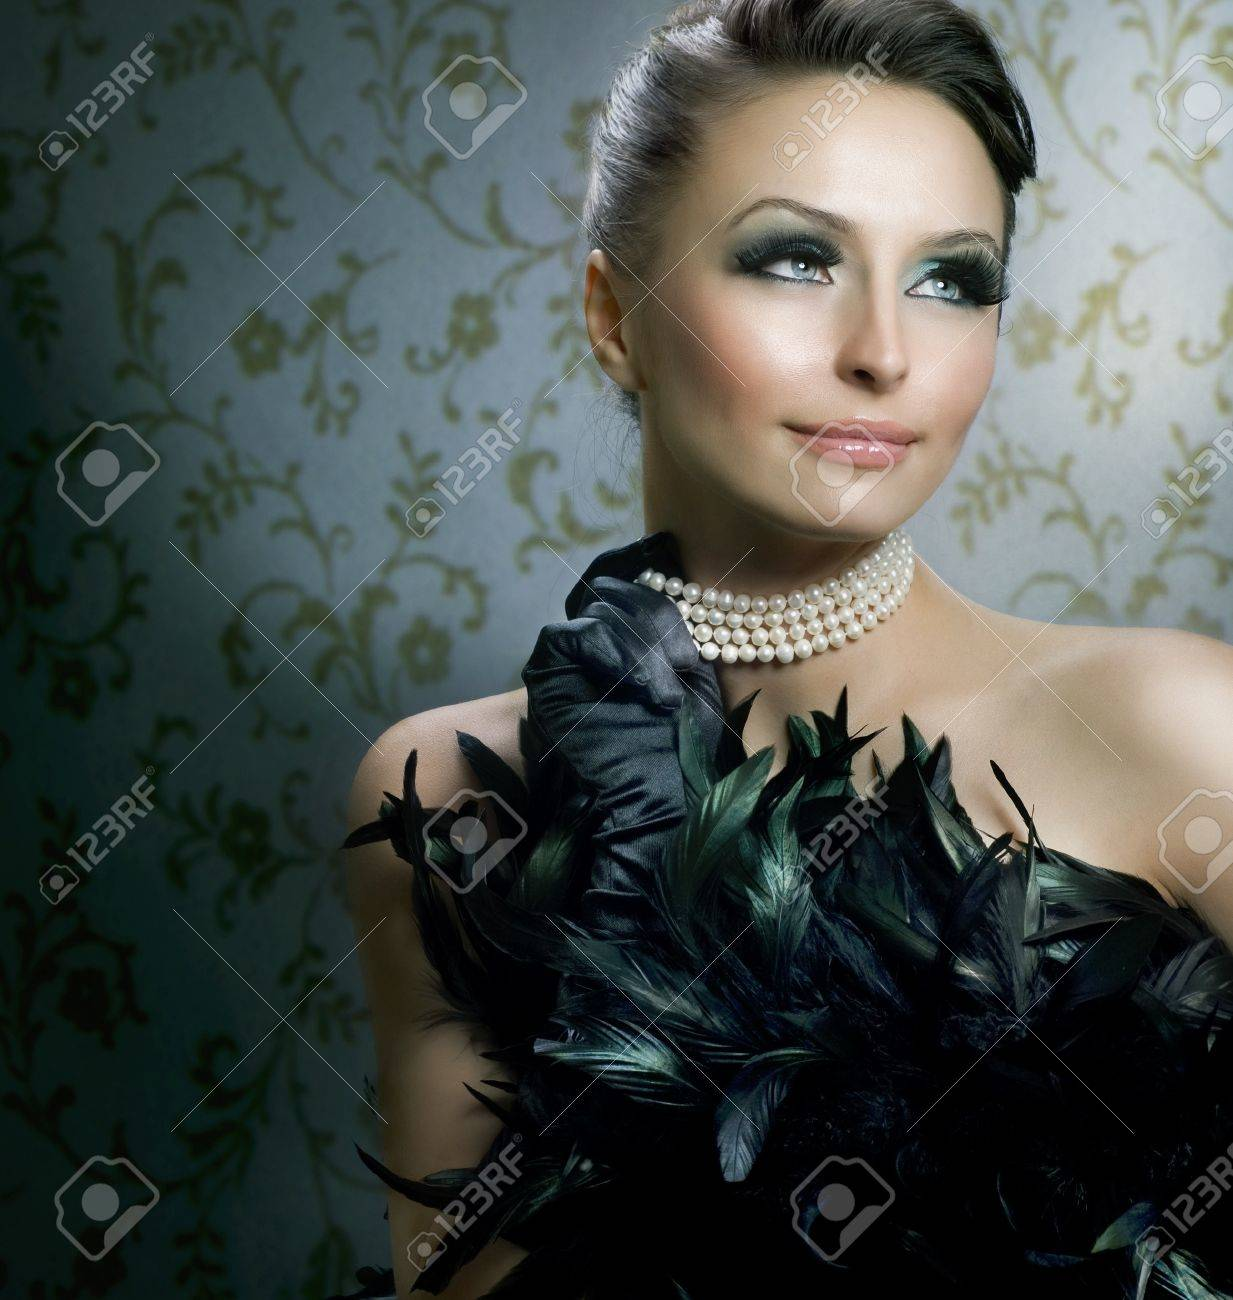 Pearl Necklace: Romantic Beauty Portraitautiful Luxury Girl